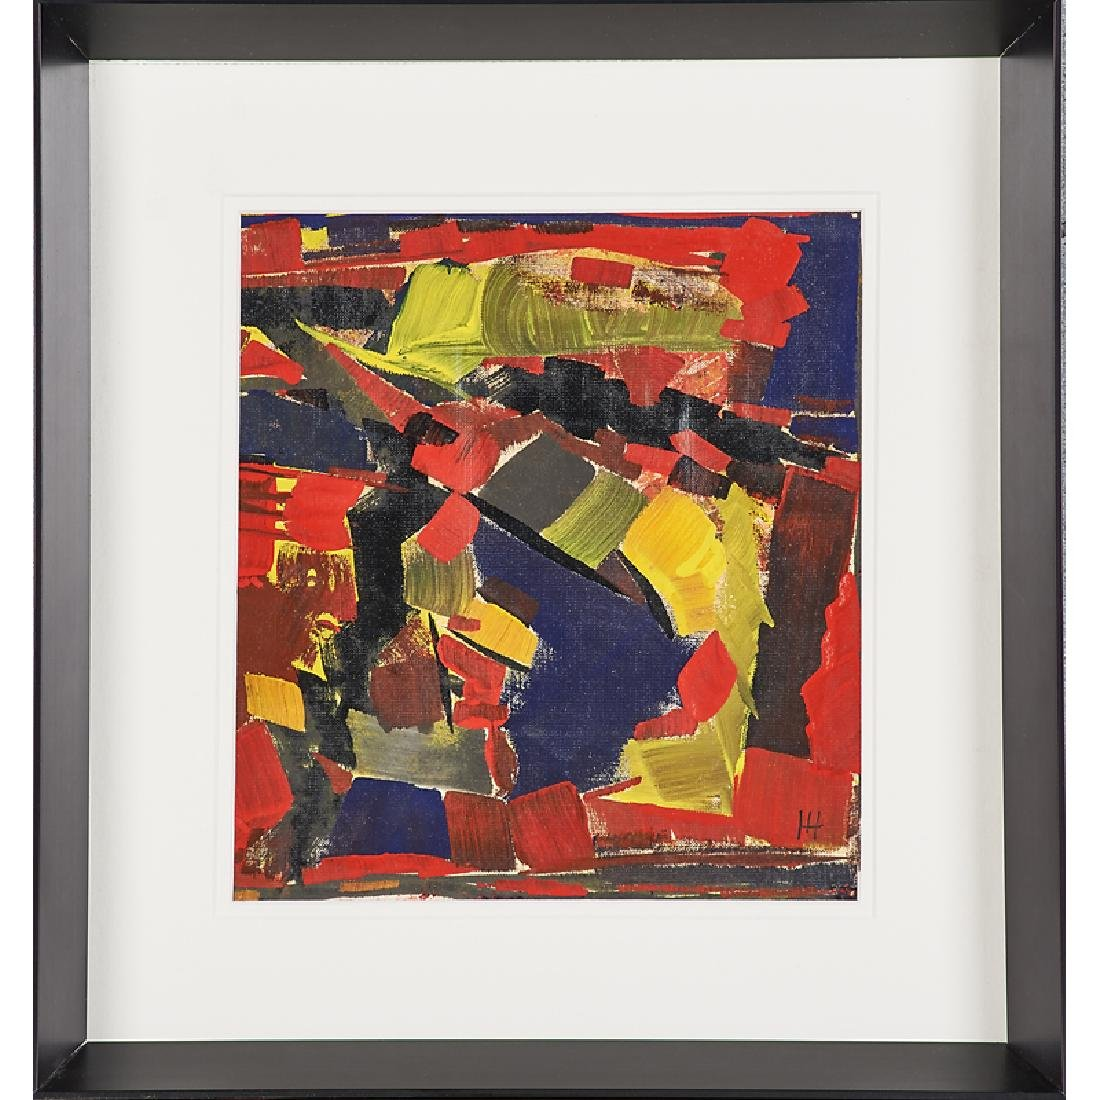 STYLE OF HANS HOFMANN (German/American, 1880-1966)